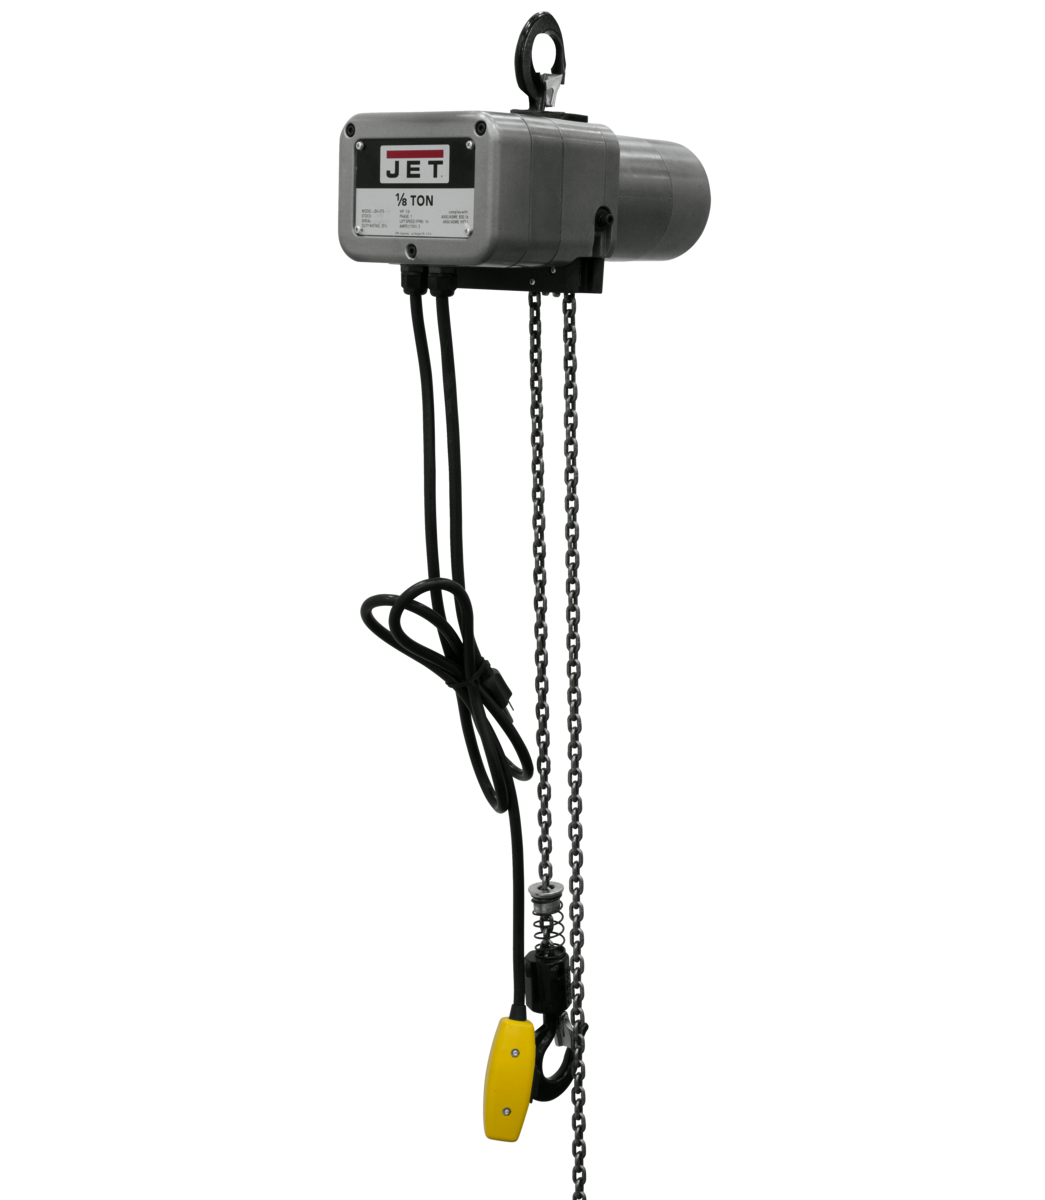 JSH-275-15 1/8-Ton Electric Chain Hoist 1-Phase 15' Lift